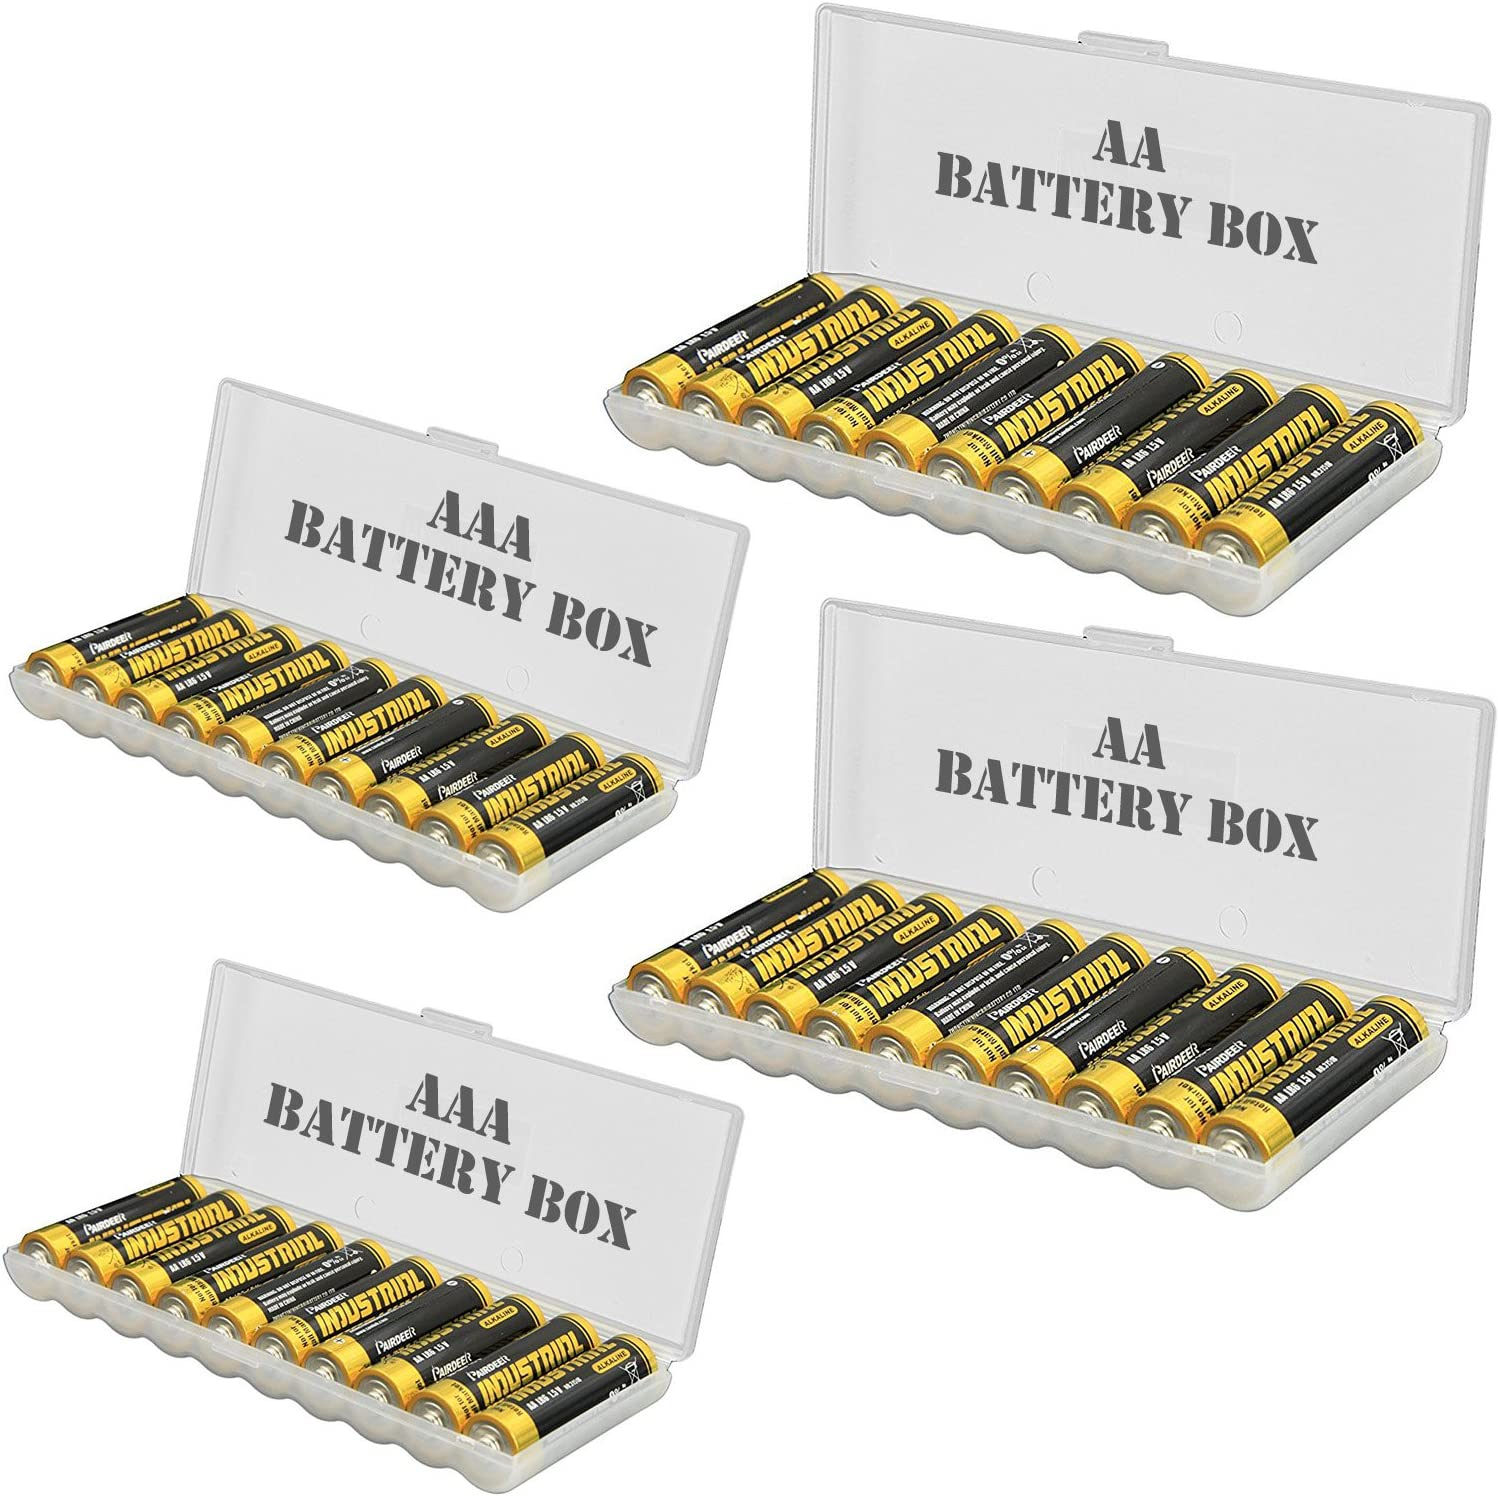 4pcs Battery storage organizer case, Batteries Storage box holds 20pcs AAA batteries and 20pcs AA batteries (battery not included)